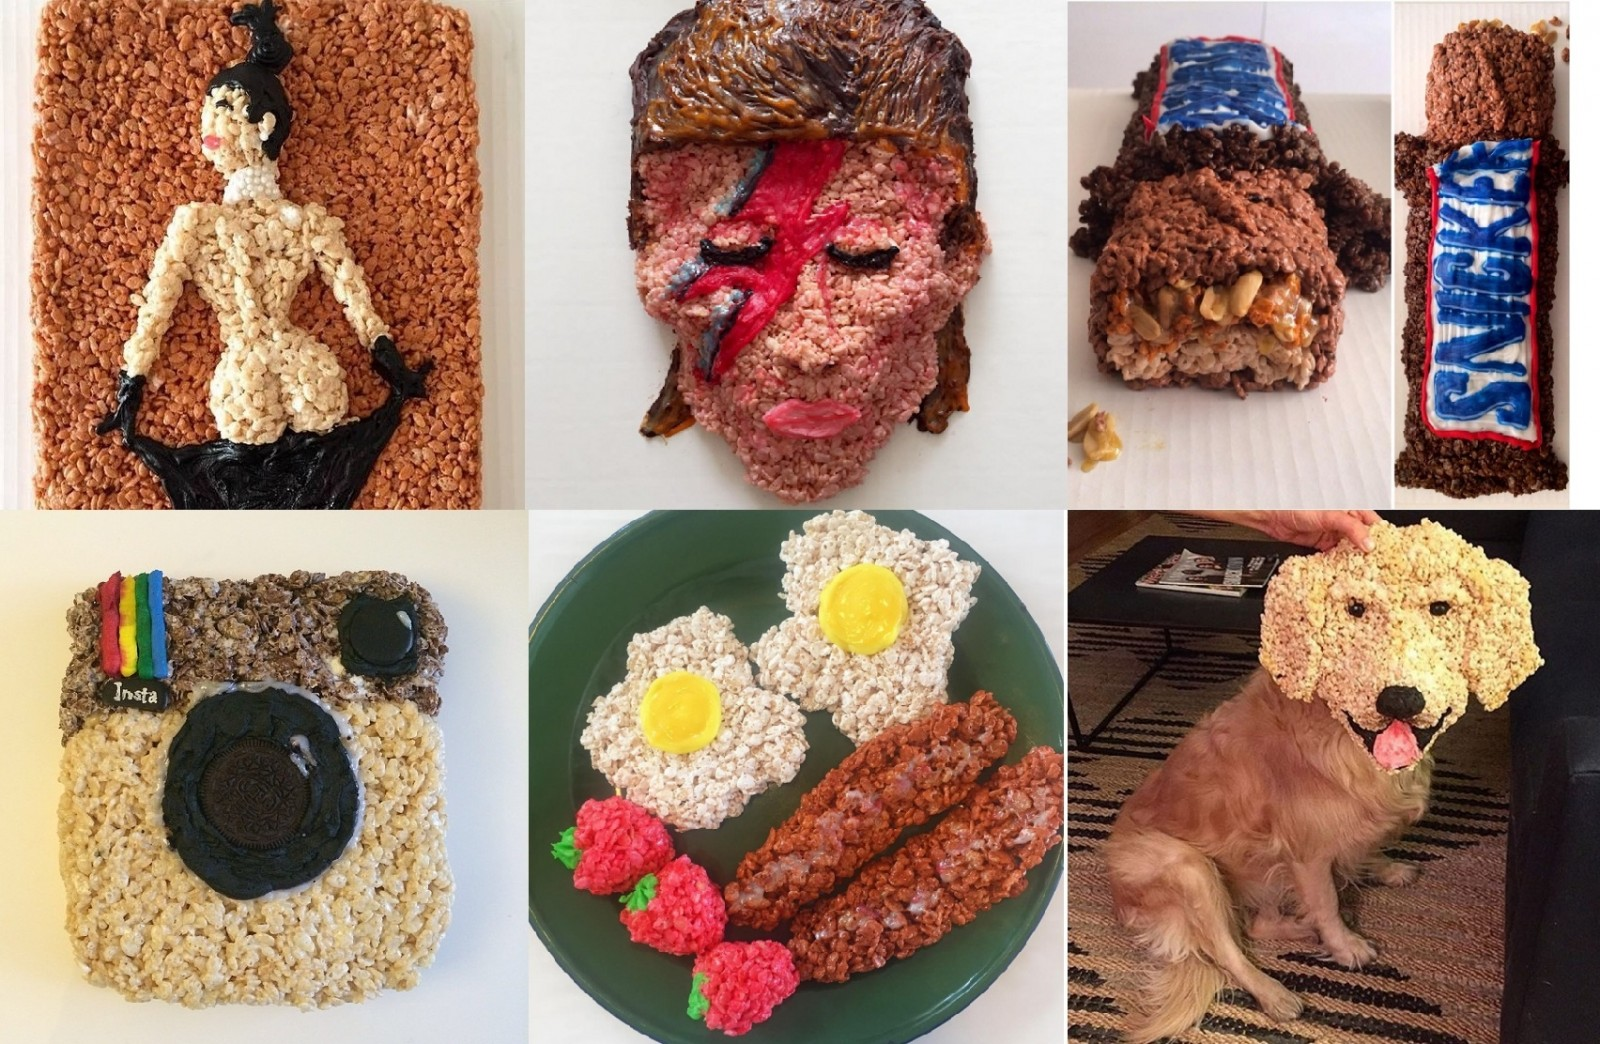 Snap, crackle, and pop… art – woman creates amazing edible designs out of Rice Krispies